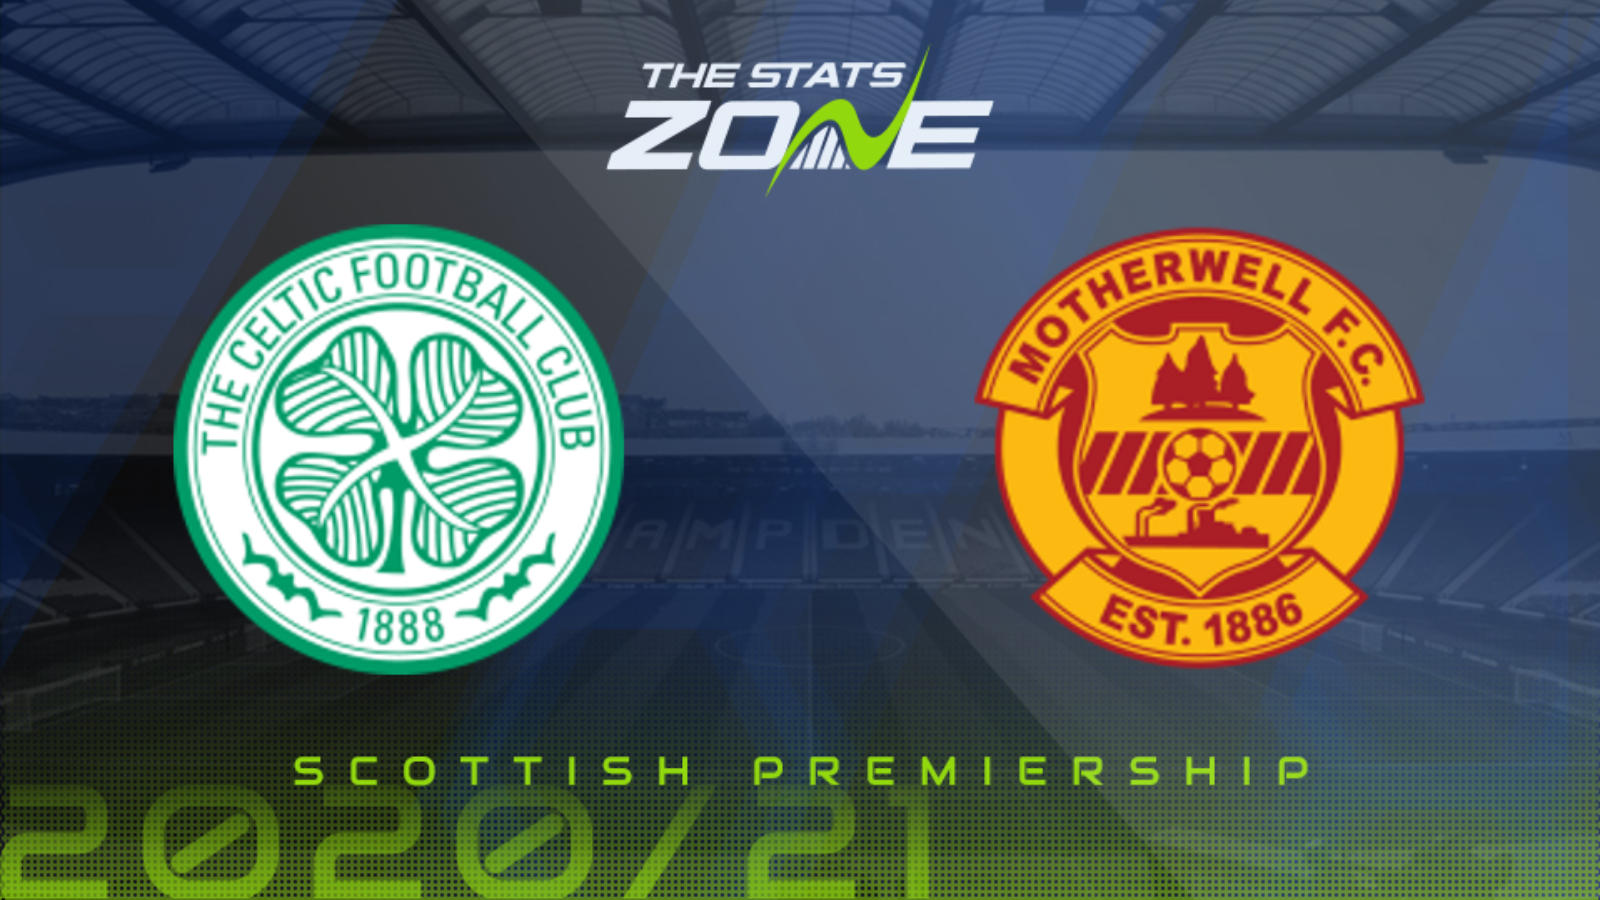 Celtic vs motherwell betting tips off track betting lancaster pa